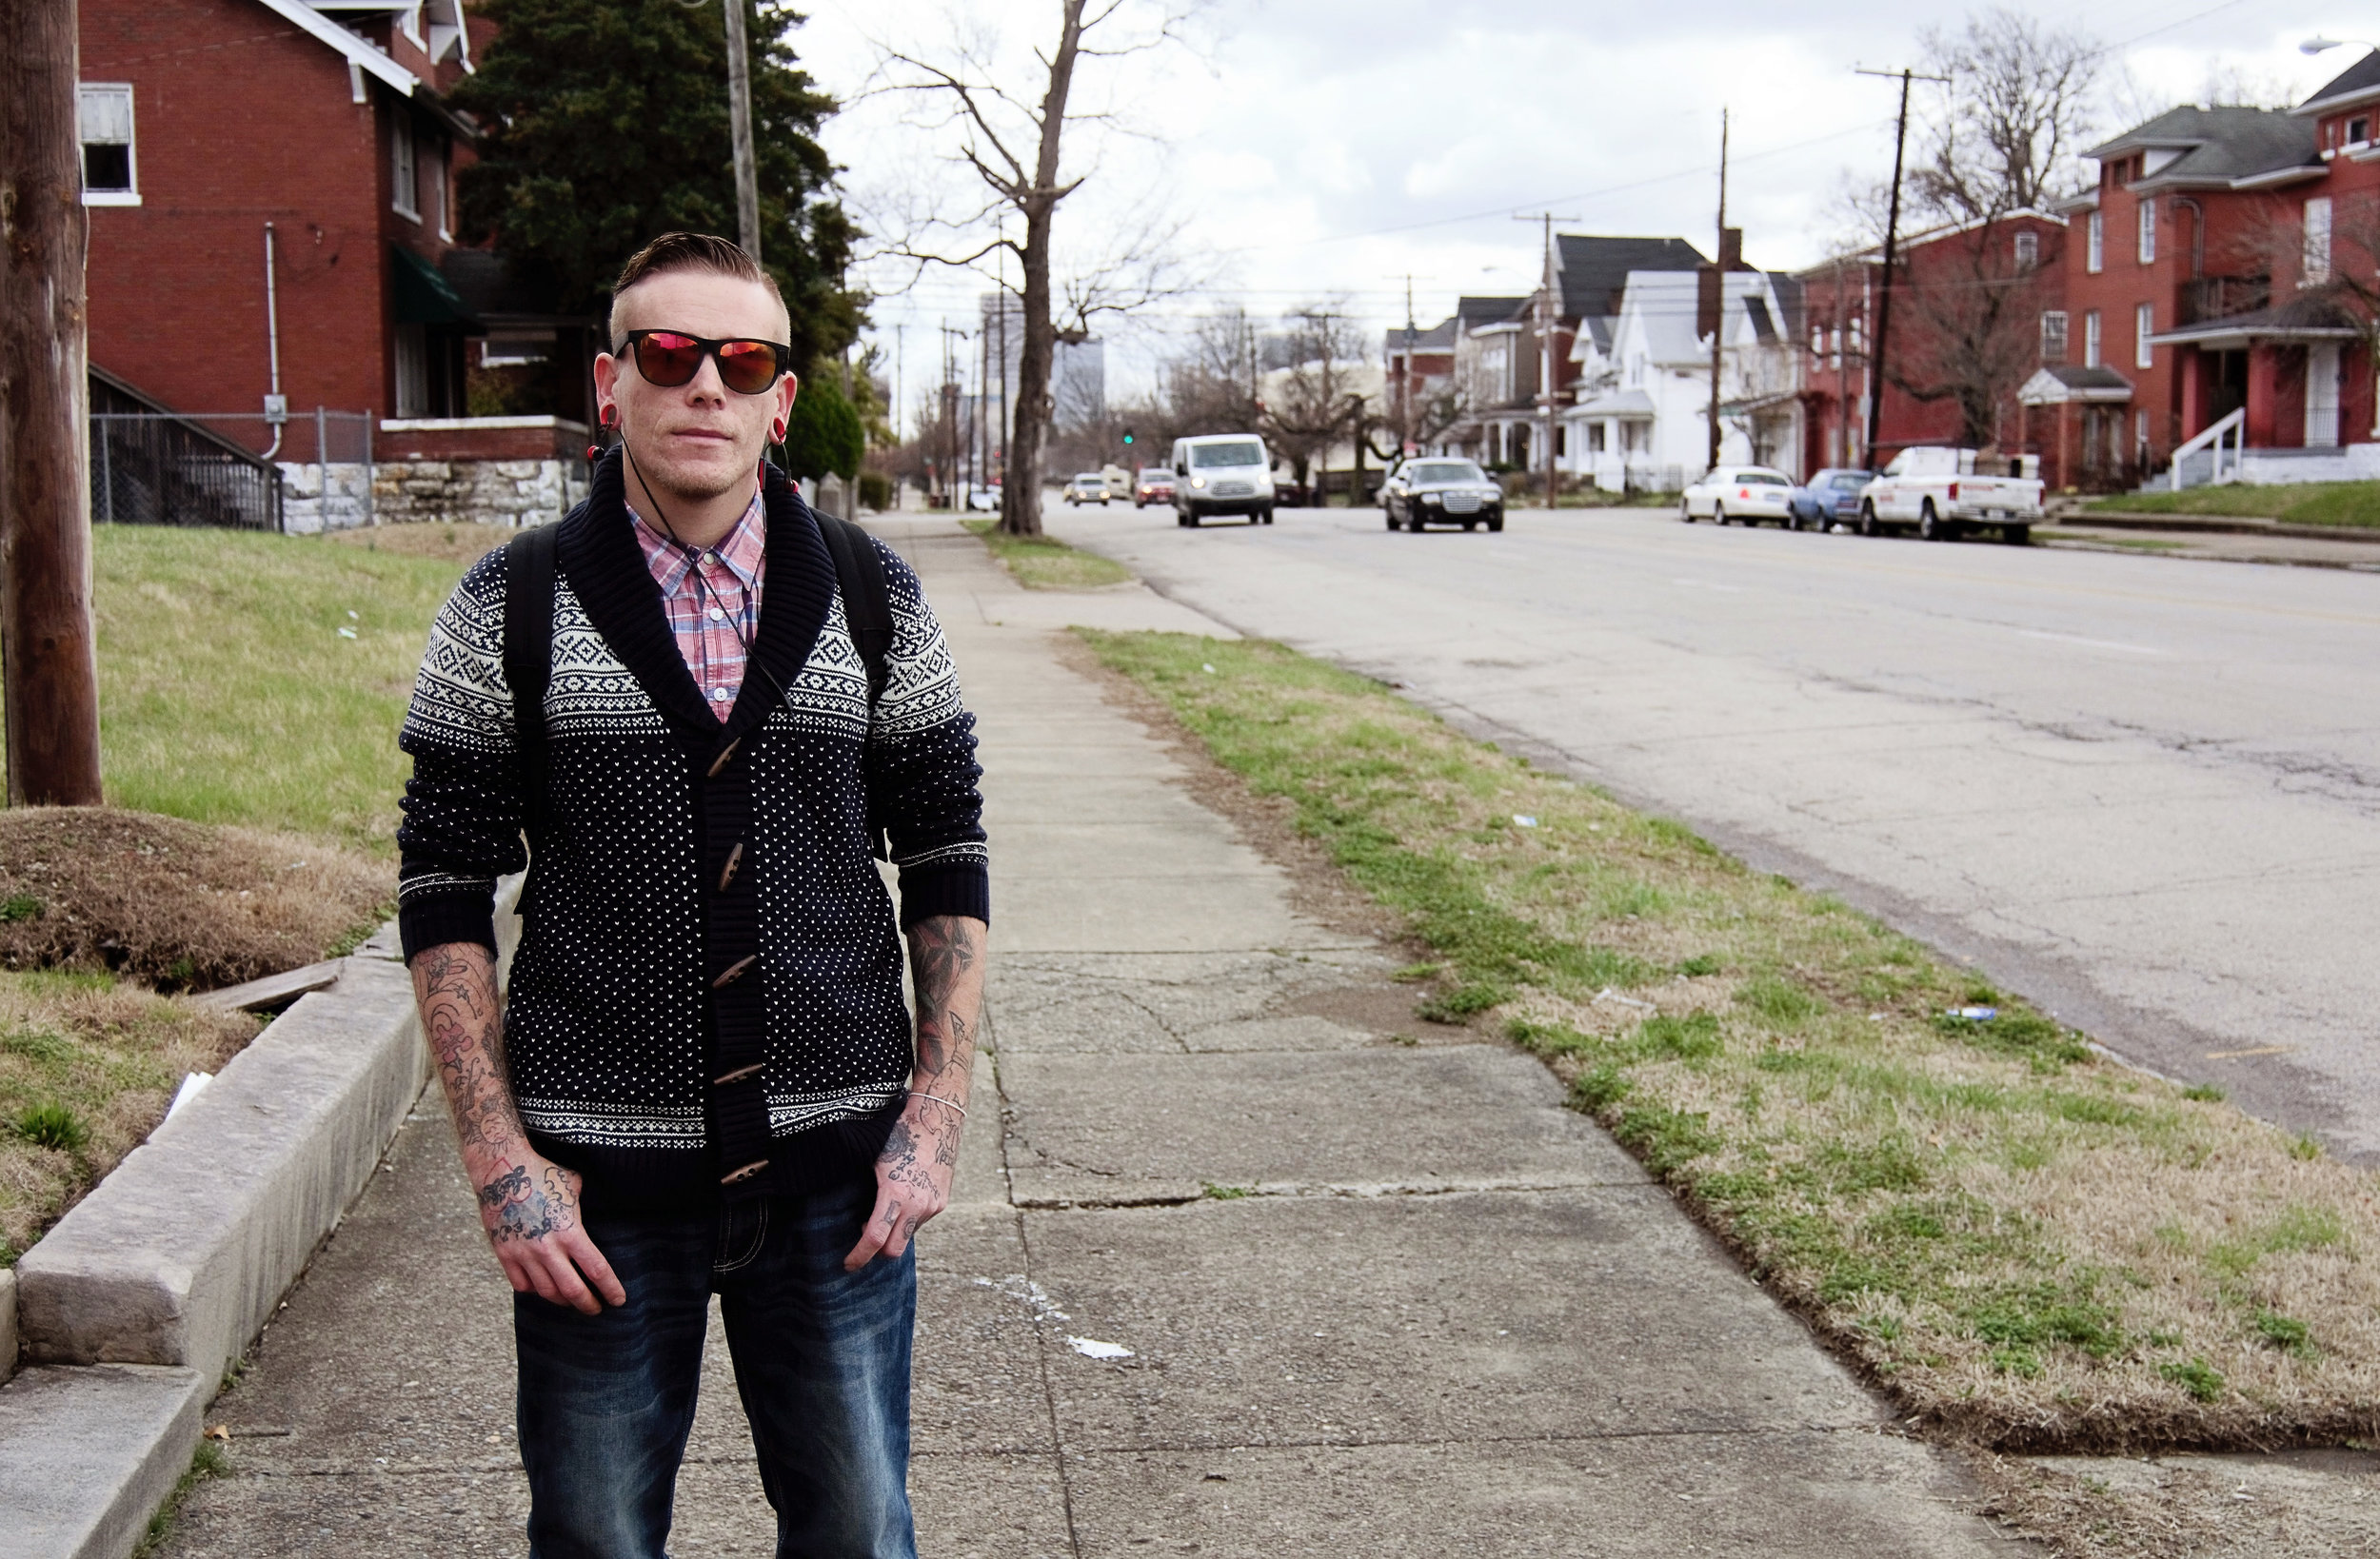 """""""In May of 2016, I went to the Healing Place and got sober. I've been sober since then. Recovery is strong, especially down here in the west end. In Louisville, period, there's like four hundred fifty something meetings a week. It's like the recovery capital of the country. It's a big deal, man. It's a lot going on, down here. Heroin is such an epidemic, you know what I mean, so why wouldn't it be? Homelessness drove me to recovery. My family told me that I couldn't come around because they didn't want me around their kids and around their stuff. I got tired of sleeping on the street, sleeping outside. I wanted to do something different and get my life back in order. I'm 28 years old. Being homeless for the past 3 years, I had a life before that. I had a house. I had a 5 bedroom house in Bullitt County. I had a wife, I had the kids, I had everything, man. I was doing it. I gave it all away for the dope. I gave it away, it wasn't taken away. AA and the Healing Place taught me how to see my part in this shit, man. Our Father's House is like an extension. It's teaching me a lot about myself."""" - Robert, Russell"""